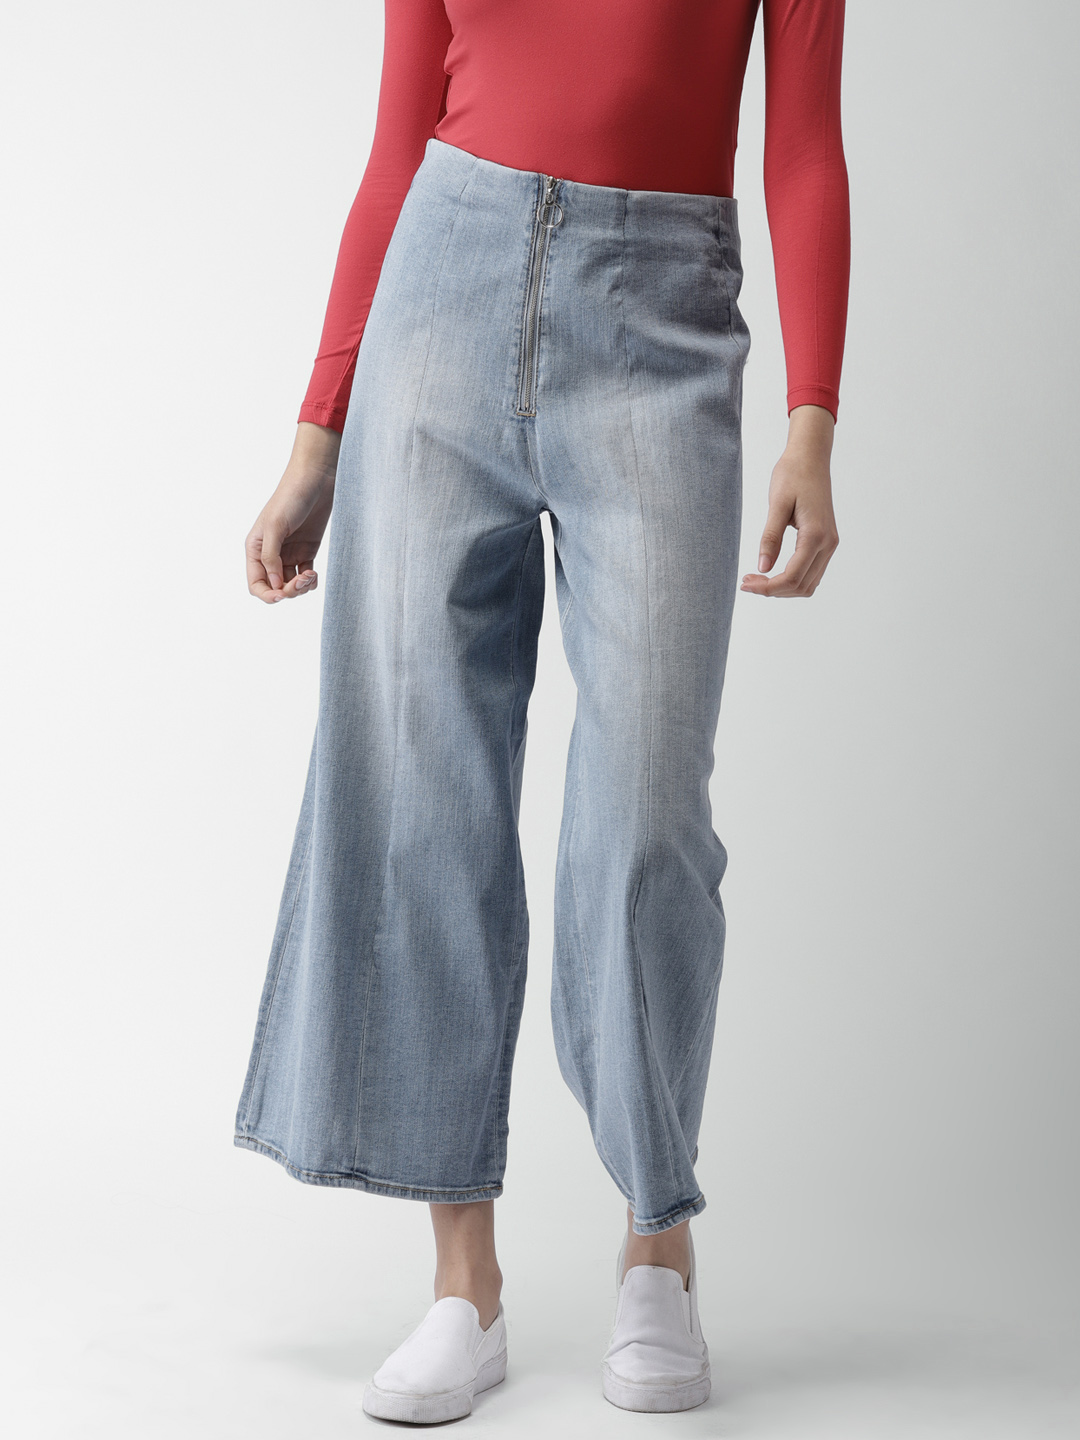 2 flared jeans